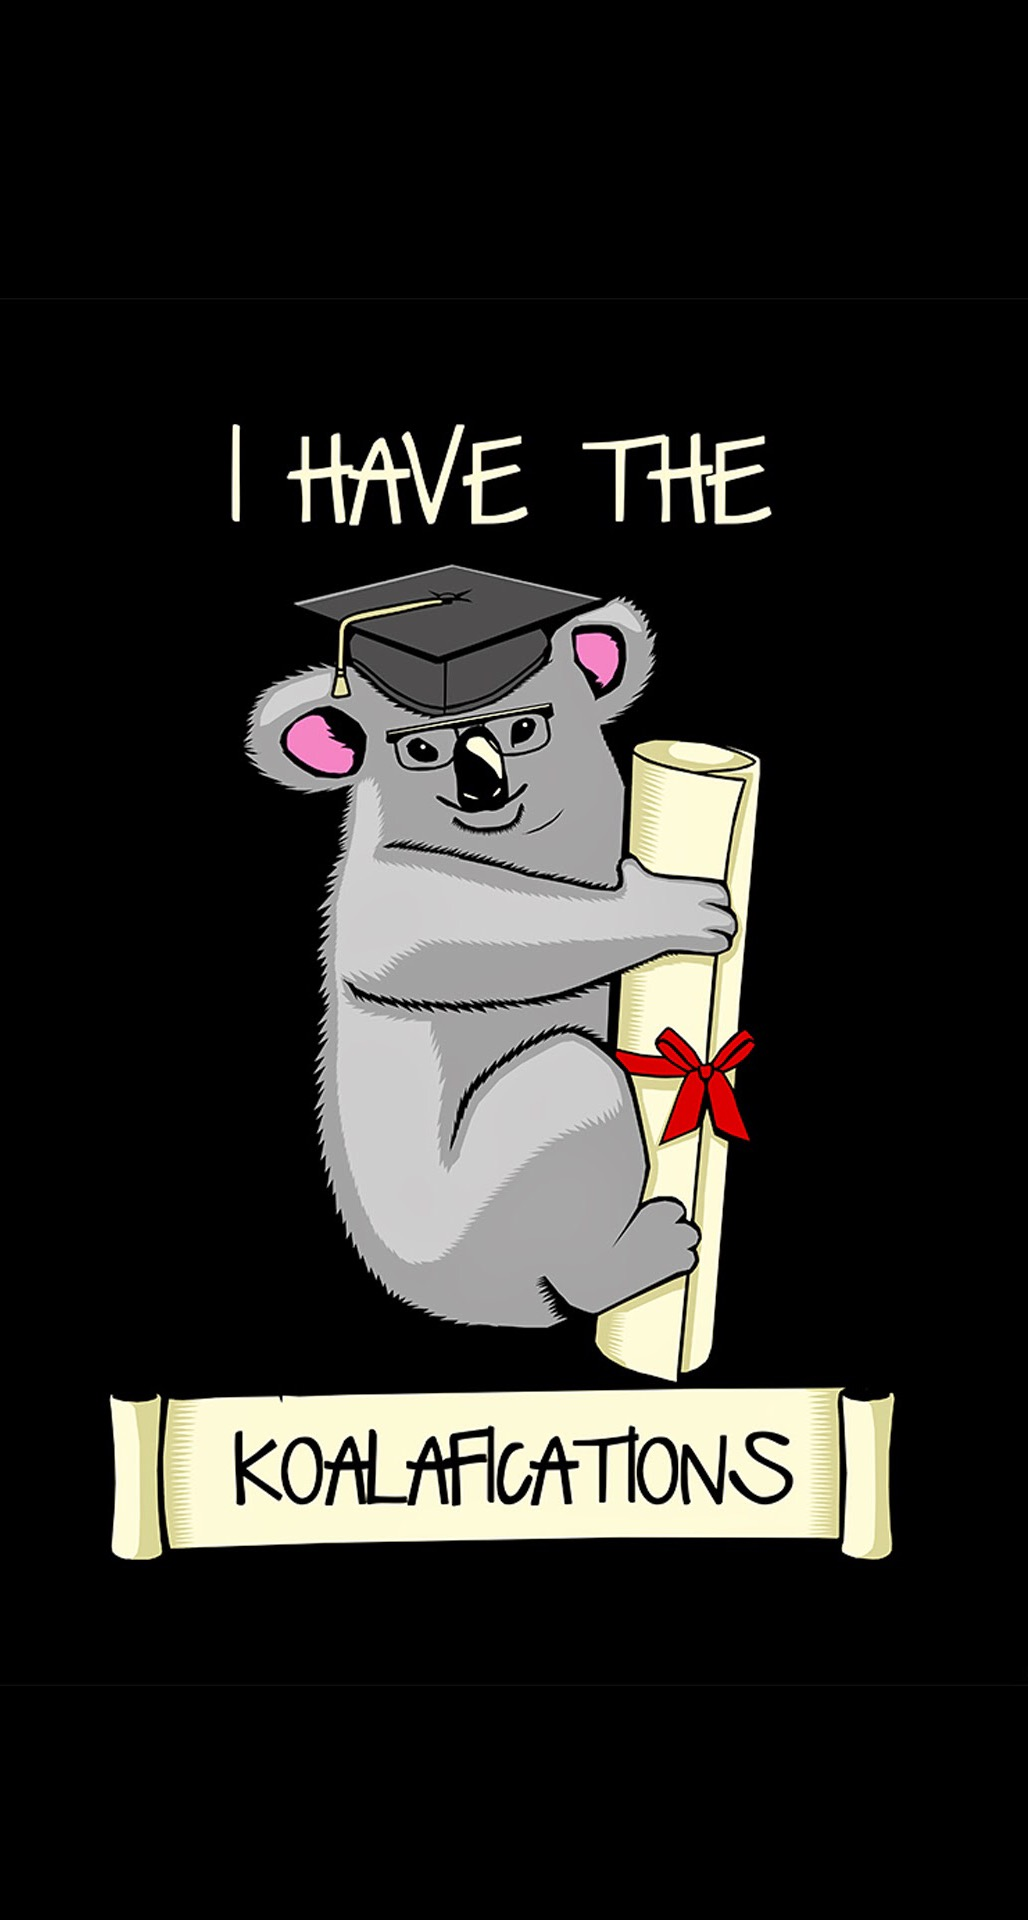 20 Funny Iphone Wallpapers I Have The Koalafications